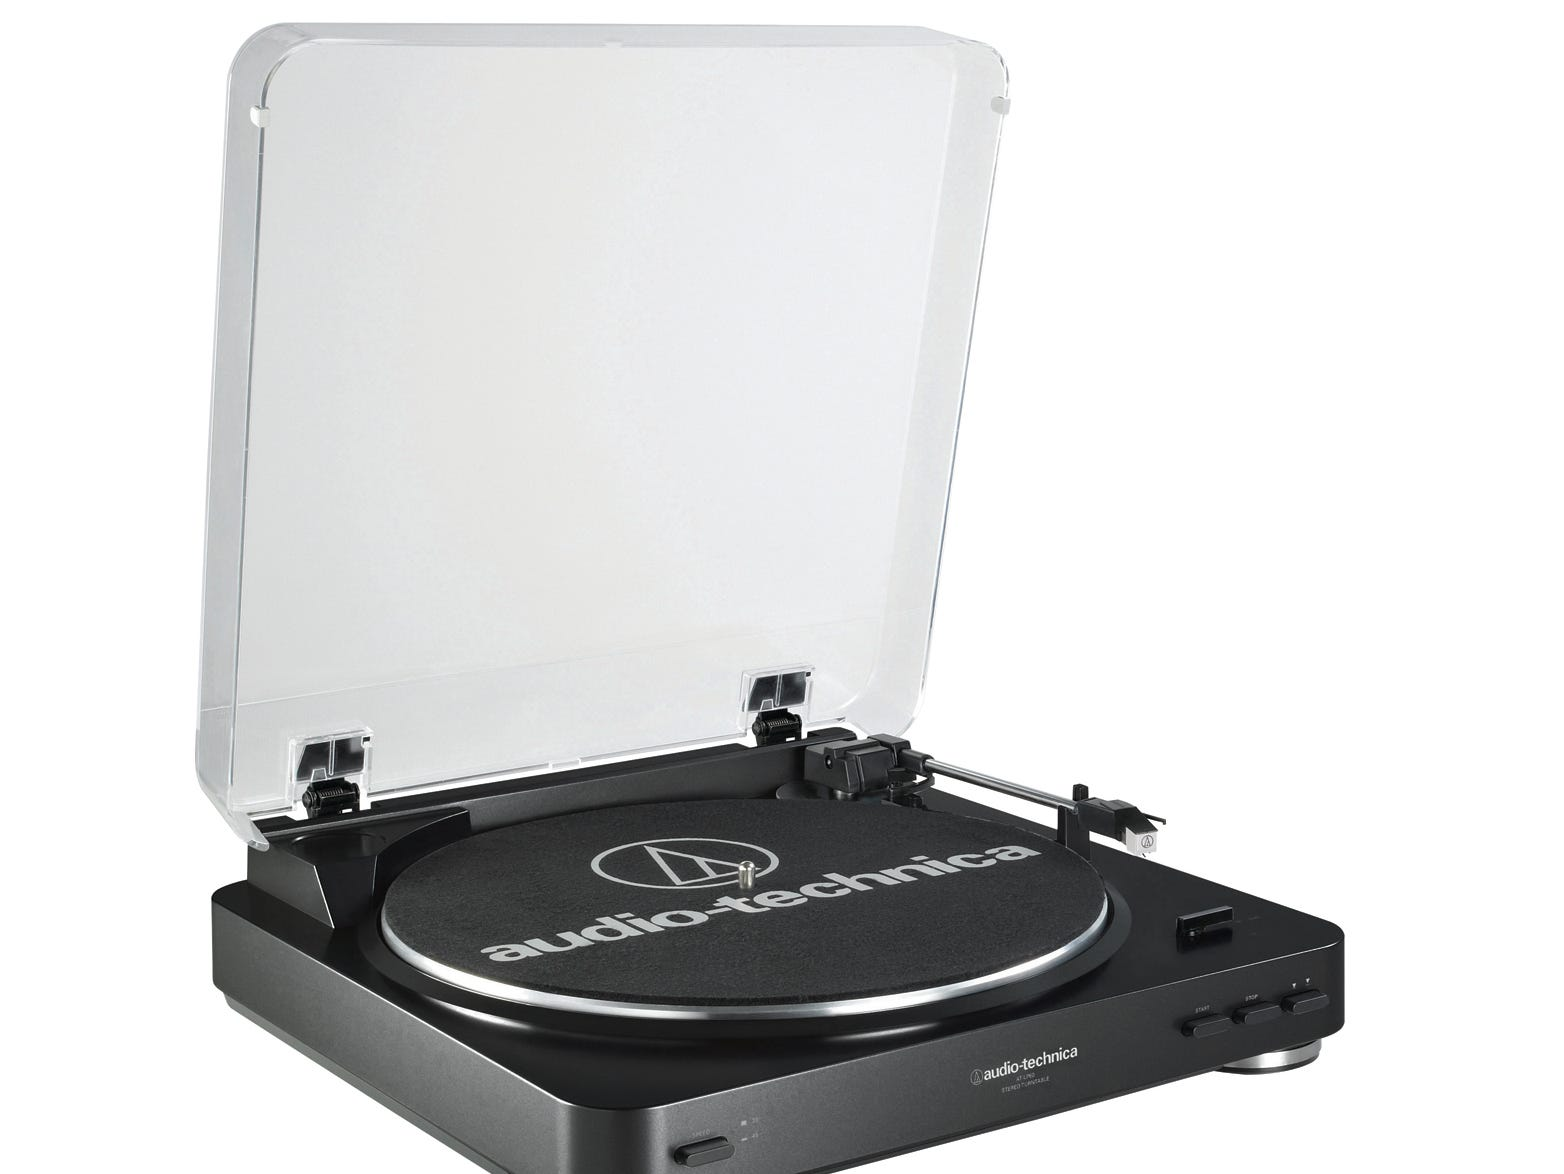 AT-LP60-USB, $129. An excellent entry level turntable.